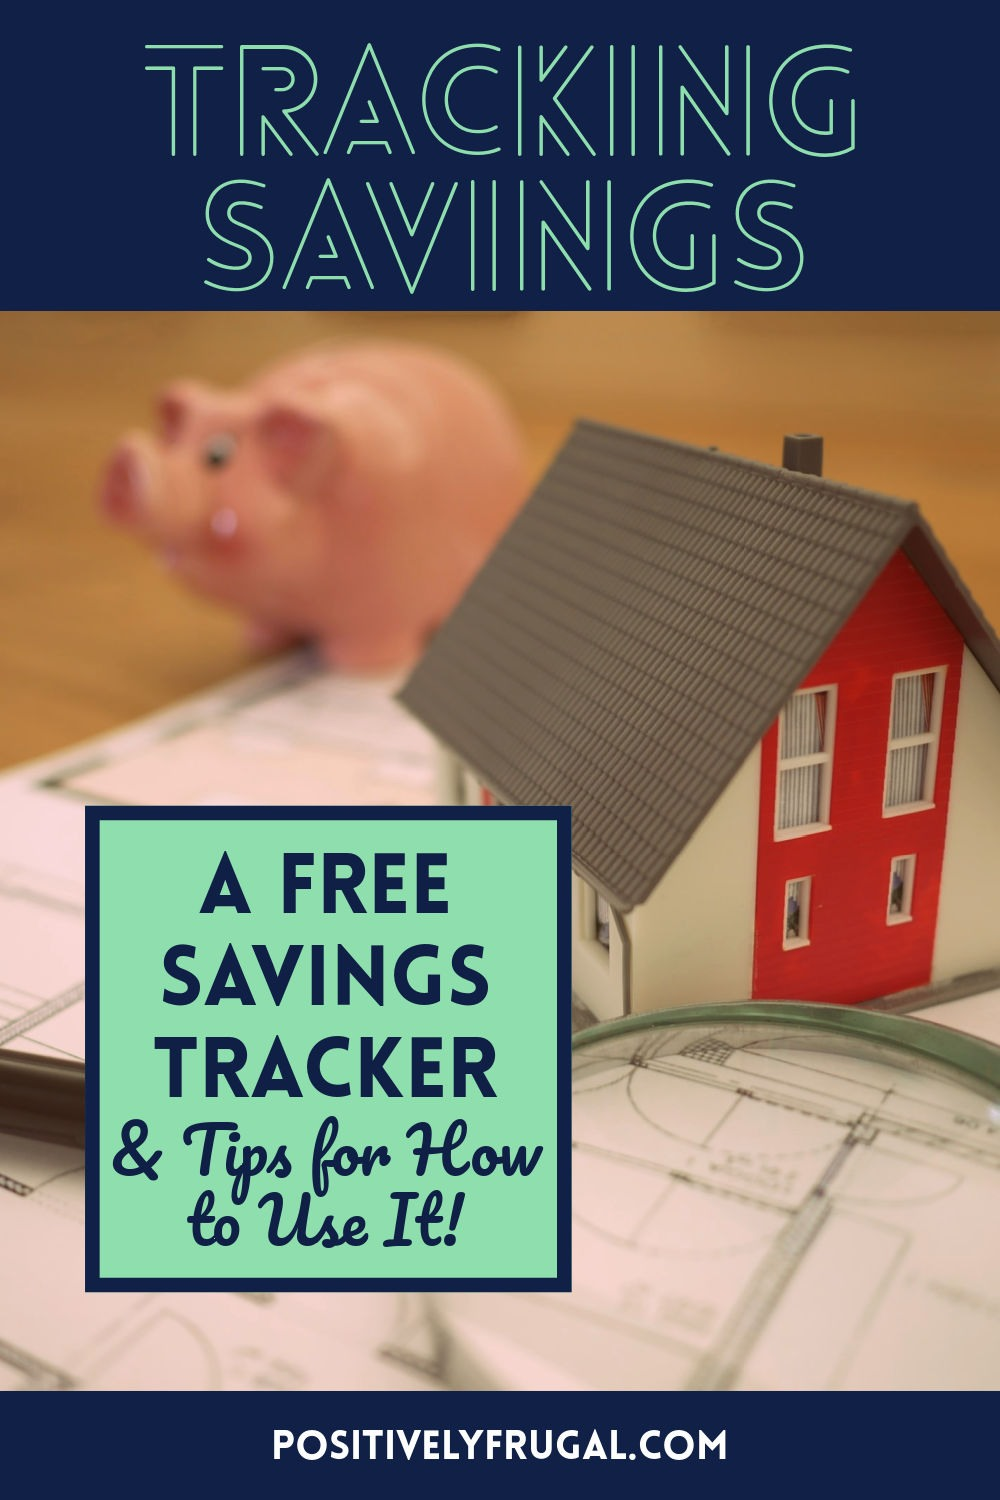 Tracking Savings A Free Savings Tracker Tips for Using It by PositivelyFrugal.com